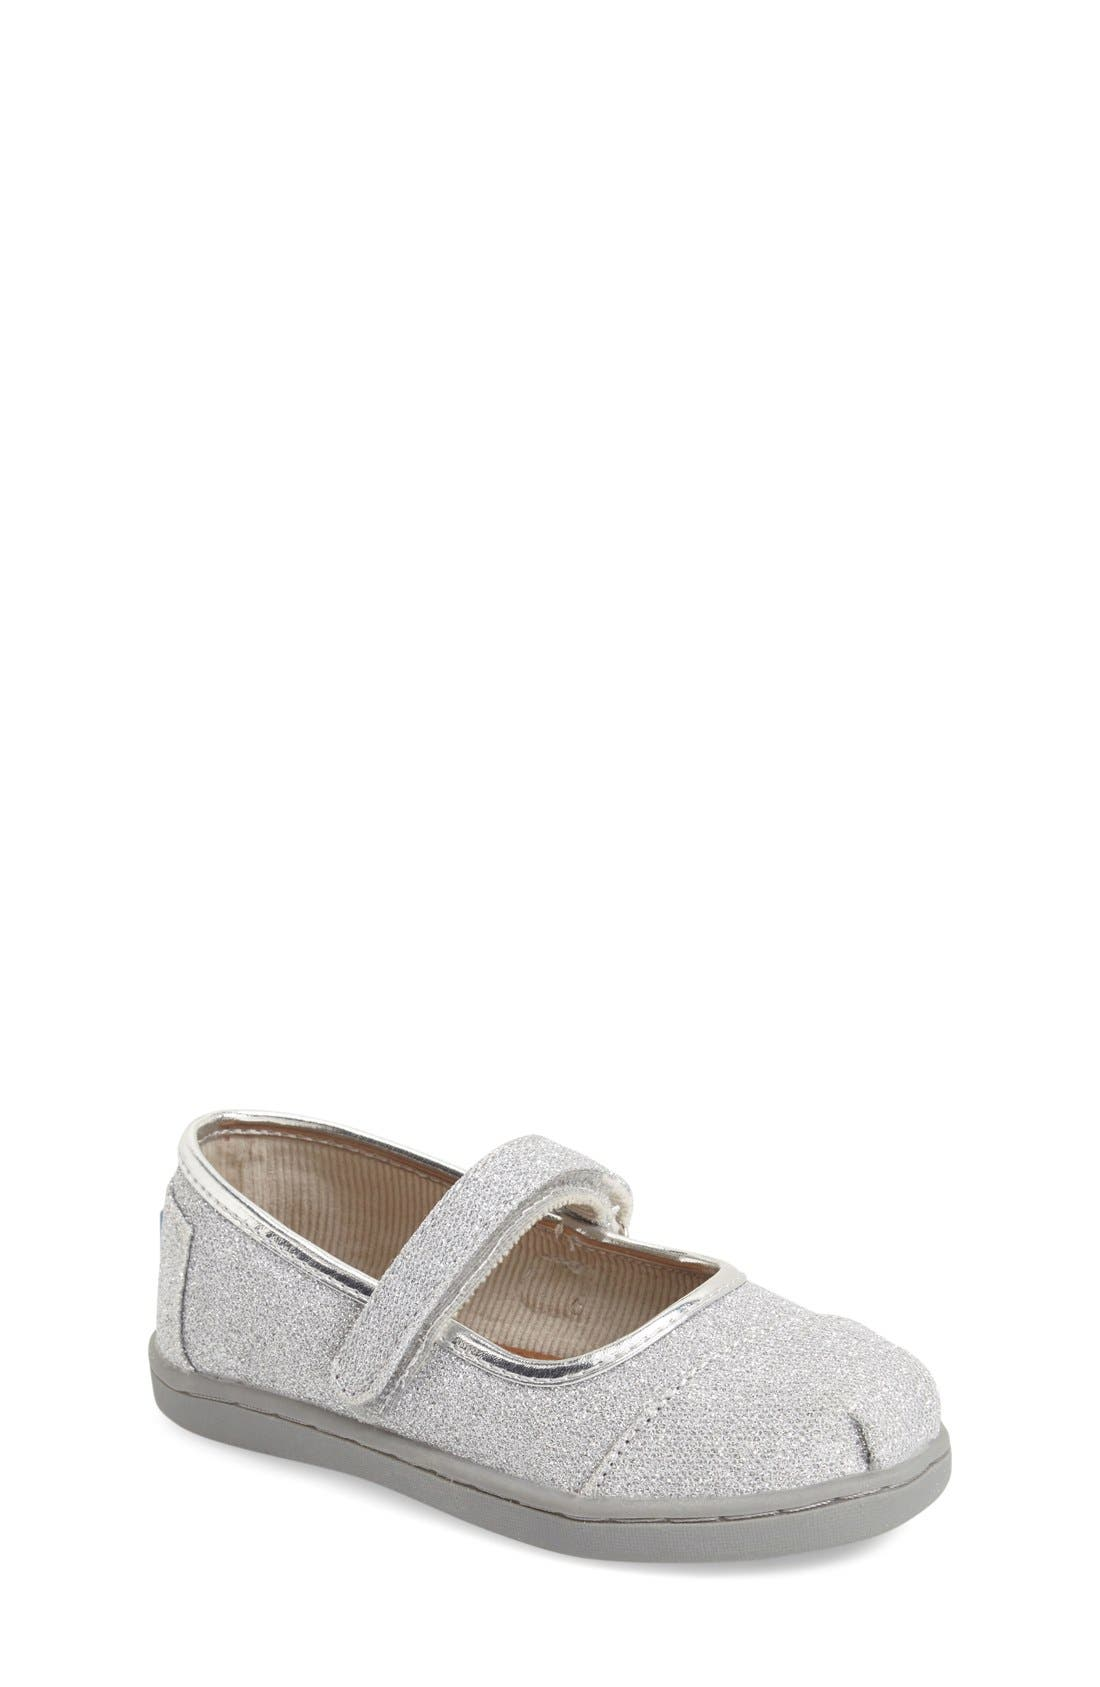 Main Image - TOMS 'Tiny Glimmer' Mary Jane Flat (Baby, Walker & Toddler)